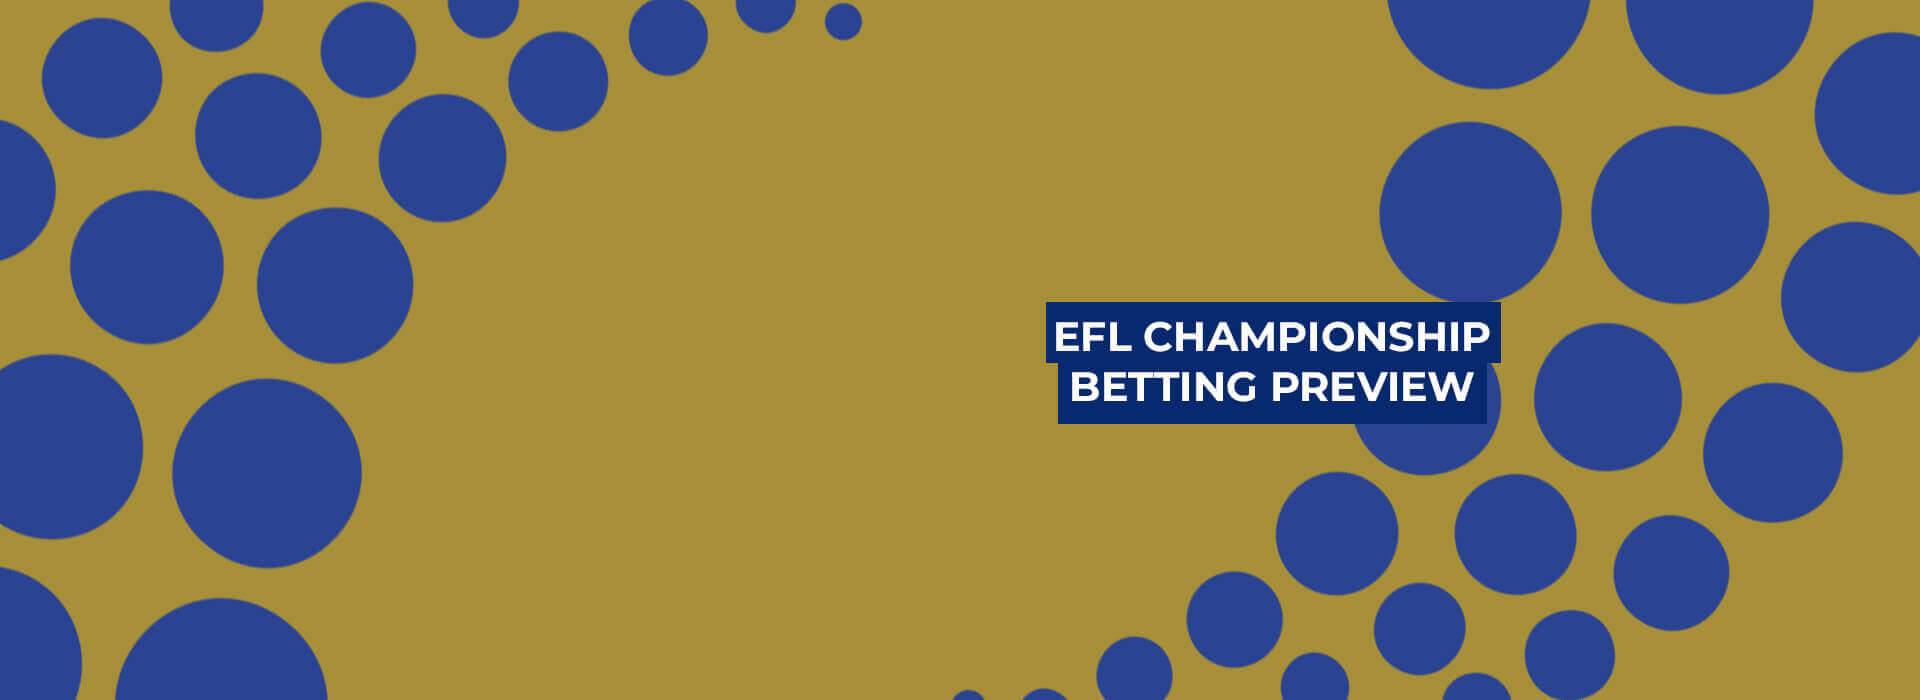 EFL Championship Season Betting Preview